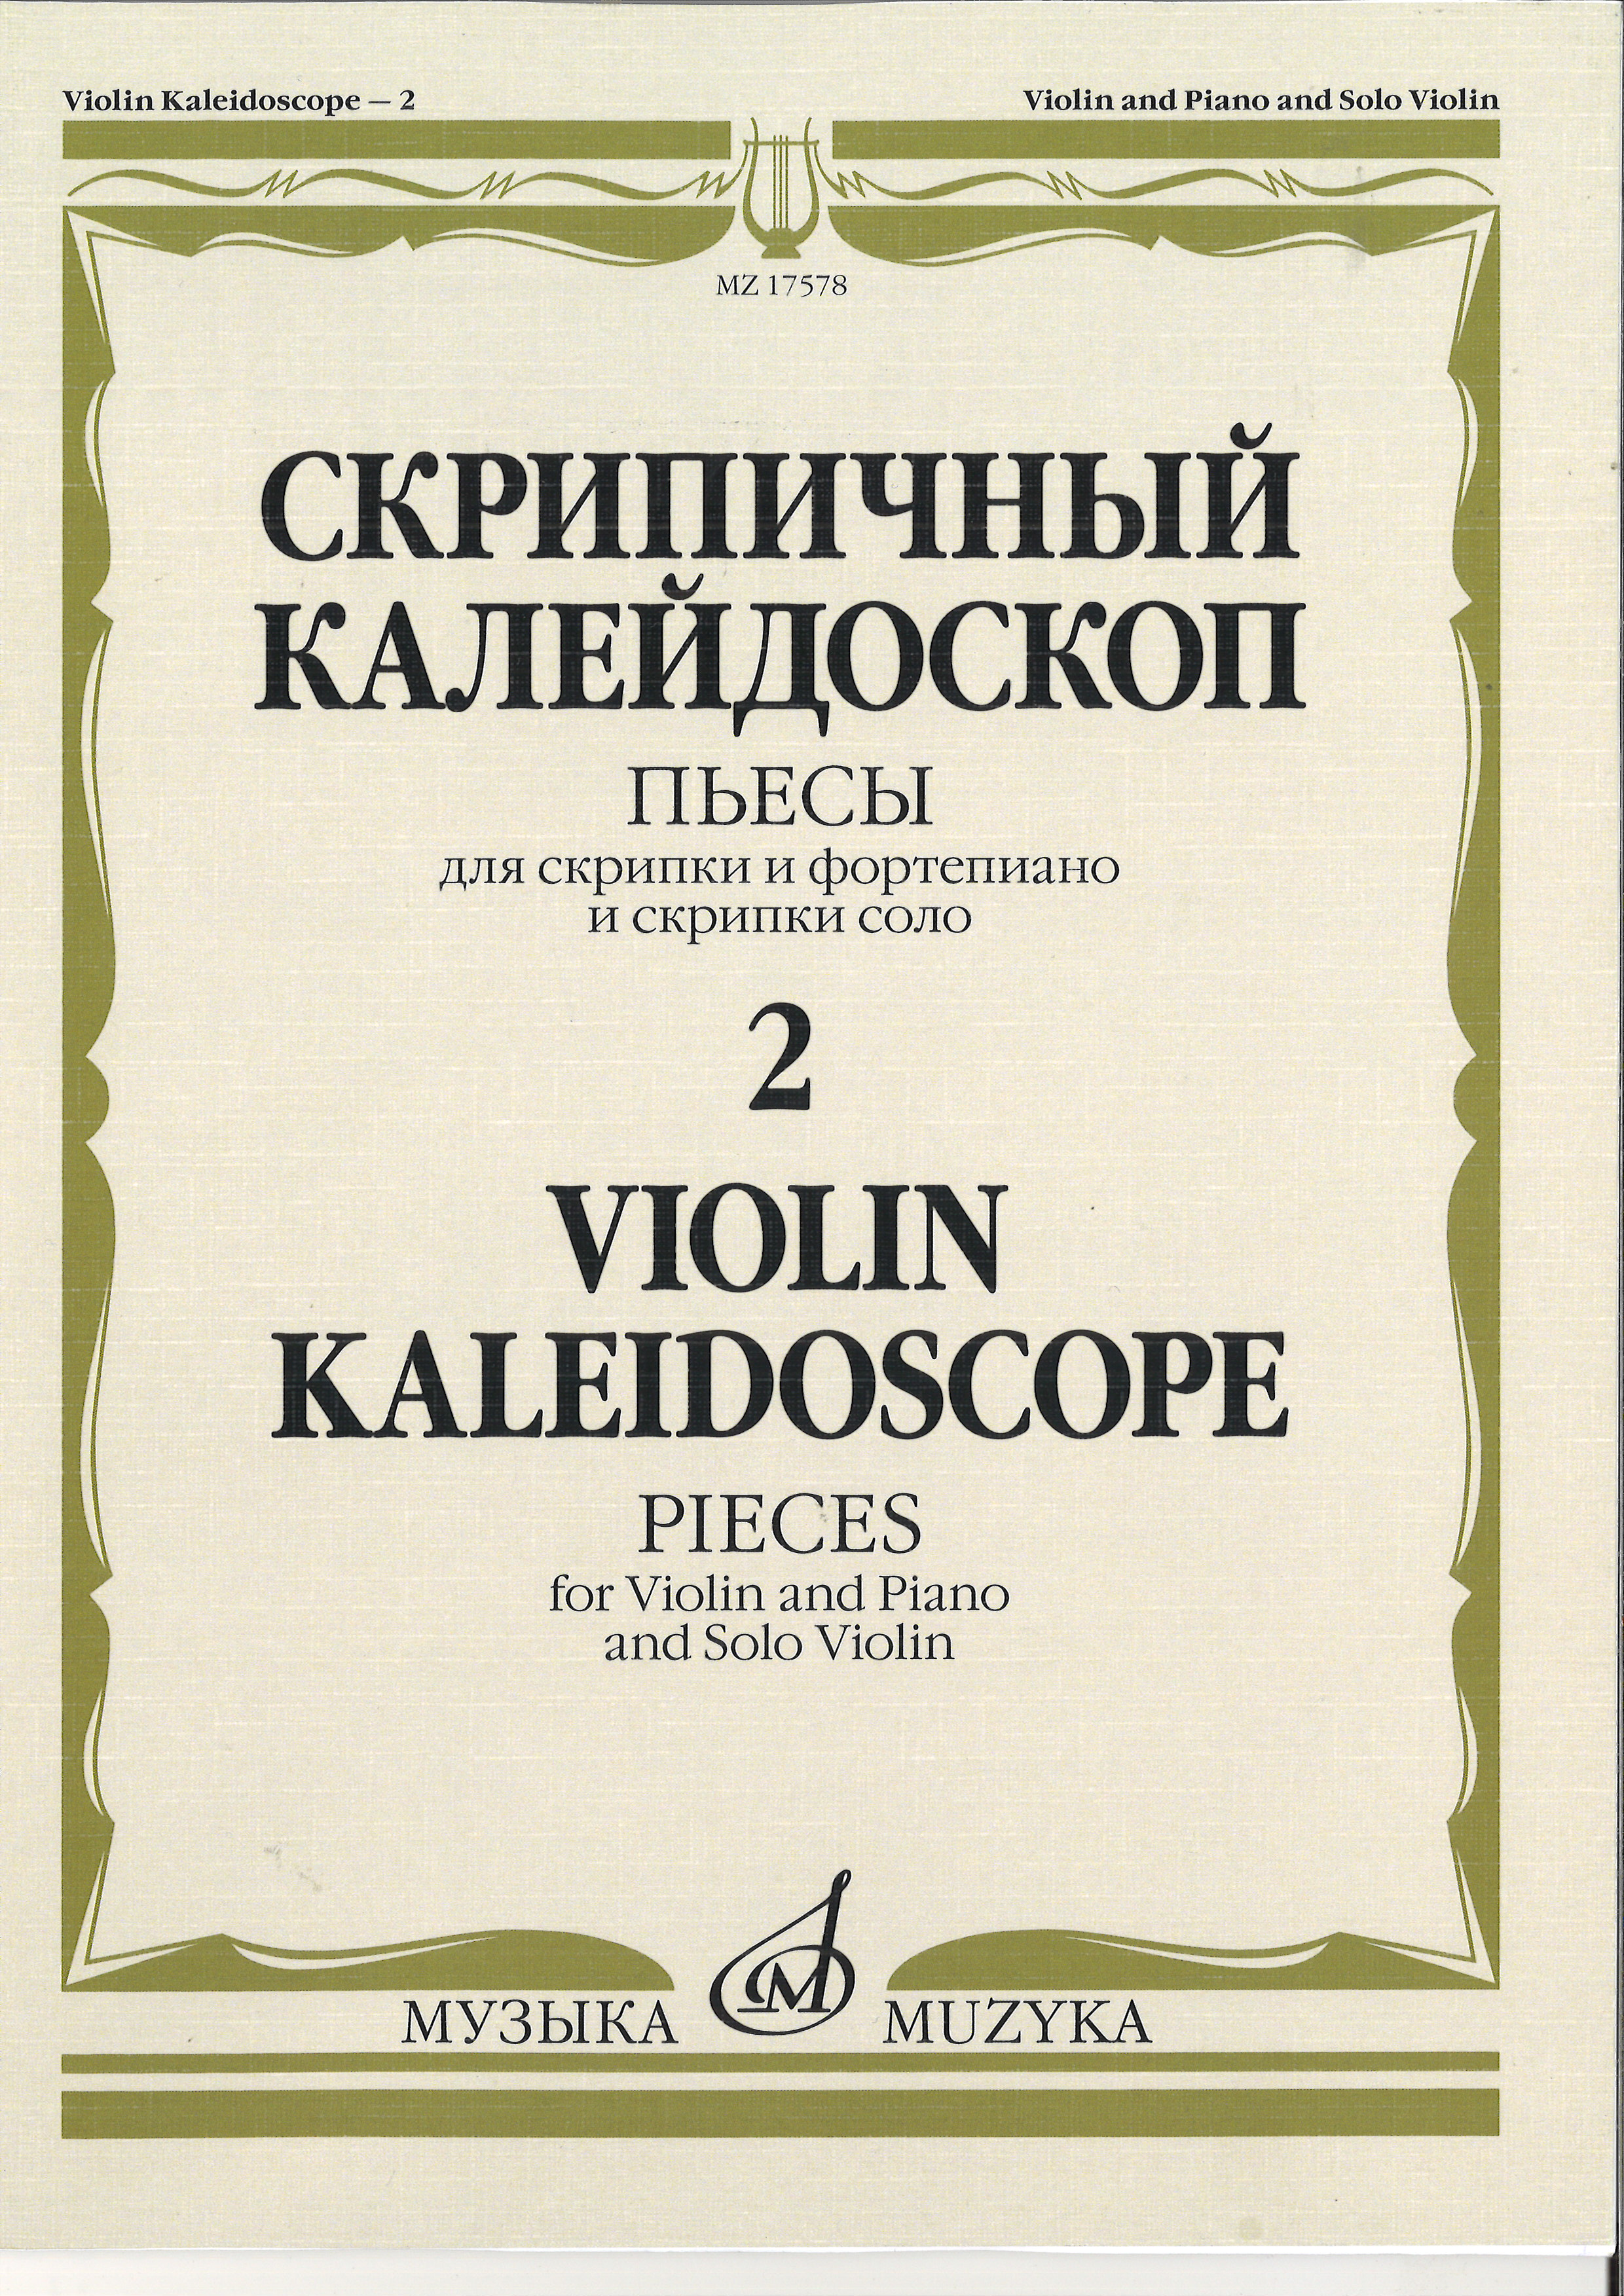 Violin Kaleidoscope - 2: Pieces for Violin and Piano and Solo Violin. Ed. by Teodor Yampolsky